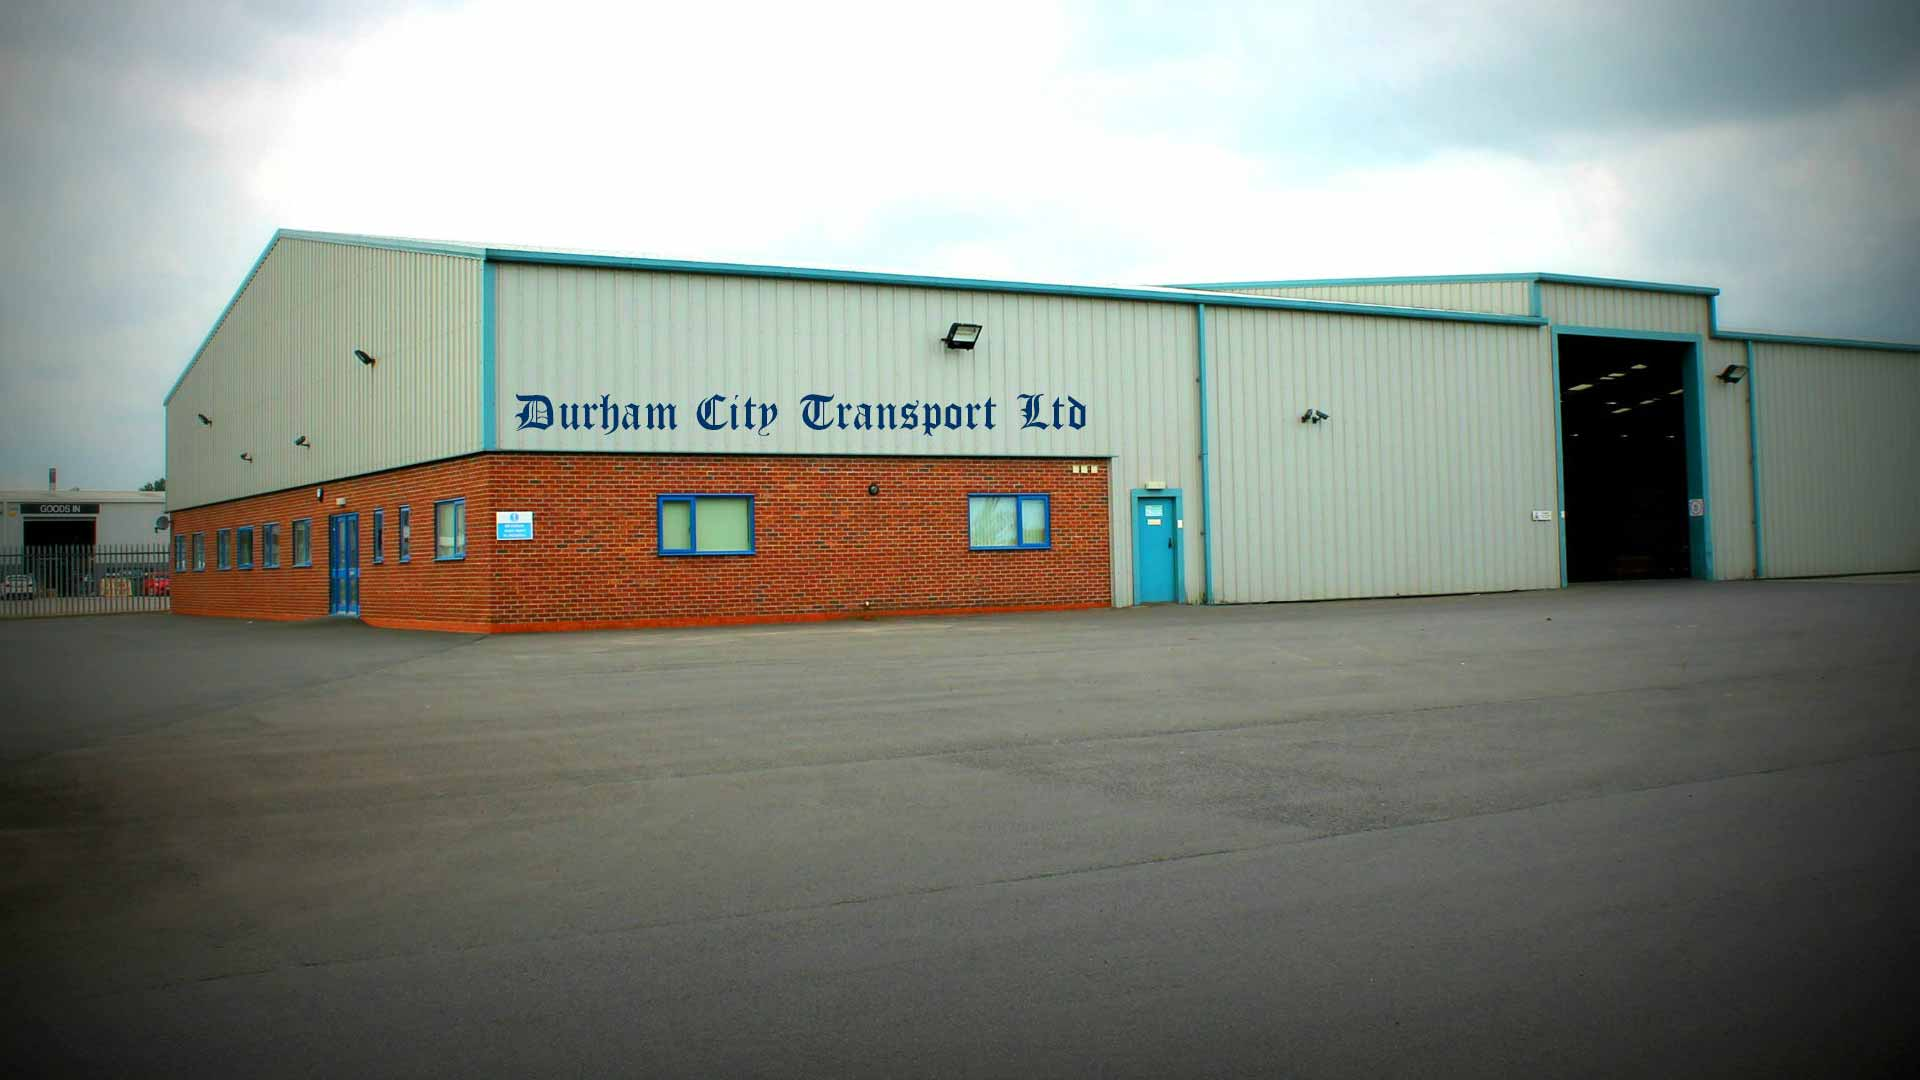 Durham City Transport Ltd Transport Storage Logistics For